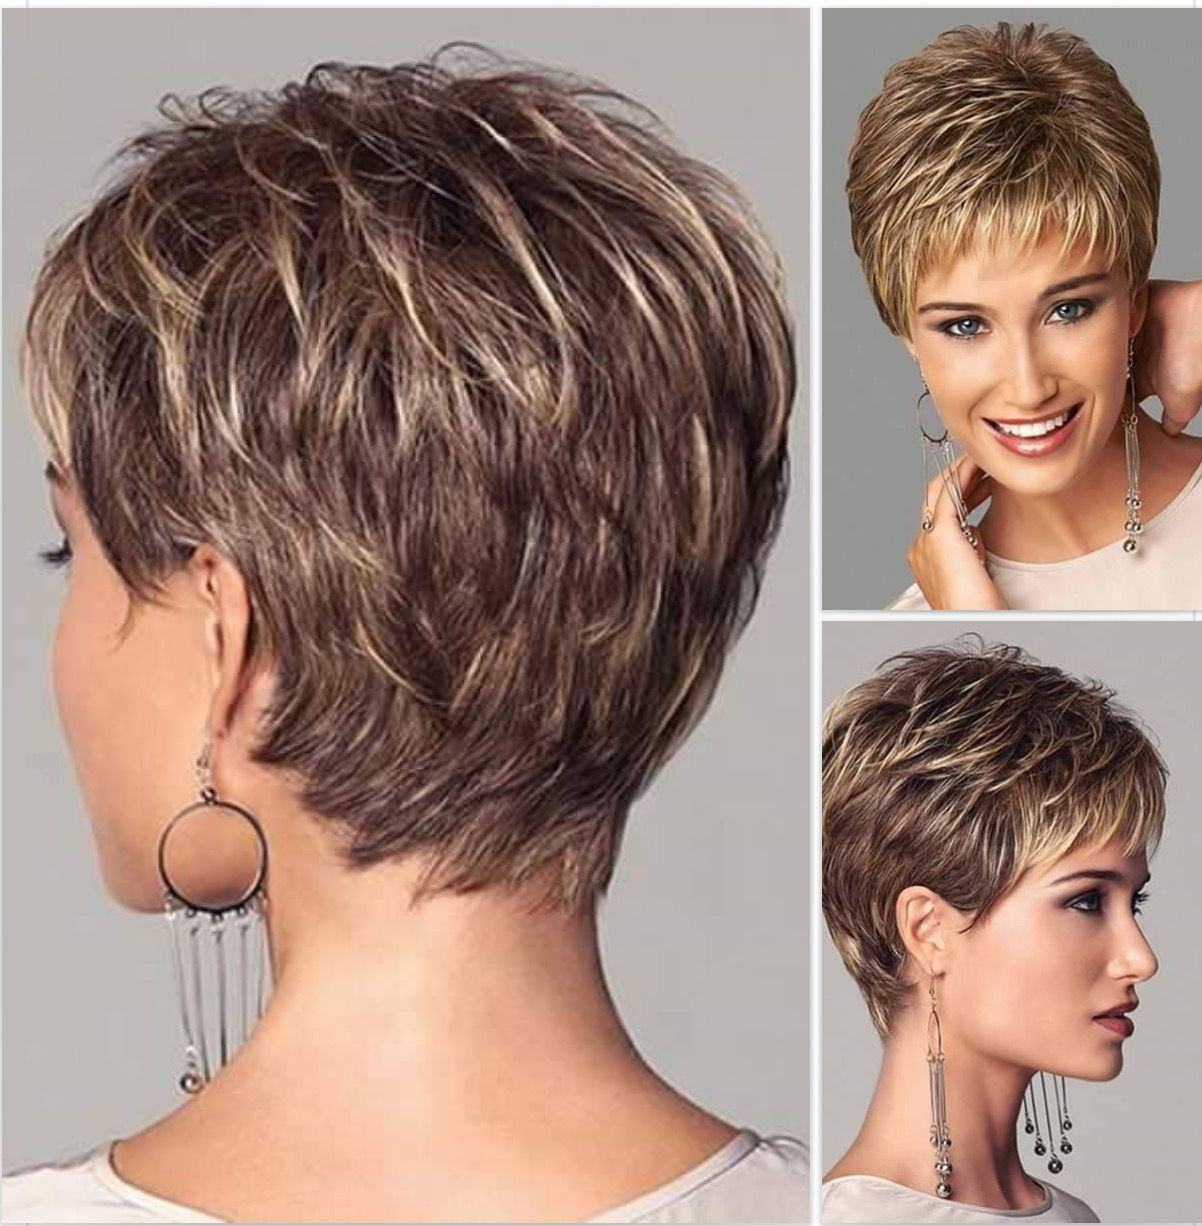 Pin by Maureen Leisure on Cute hairstyles for short hair  Short